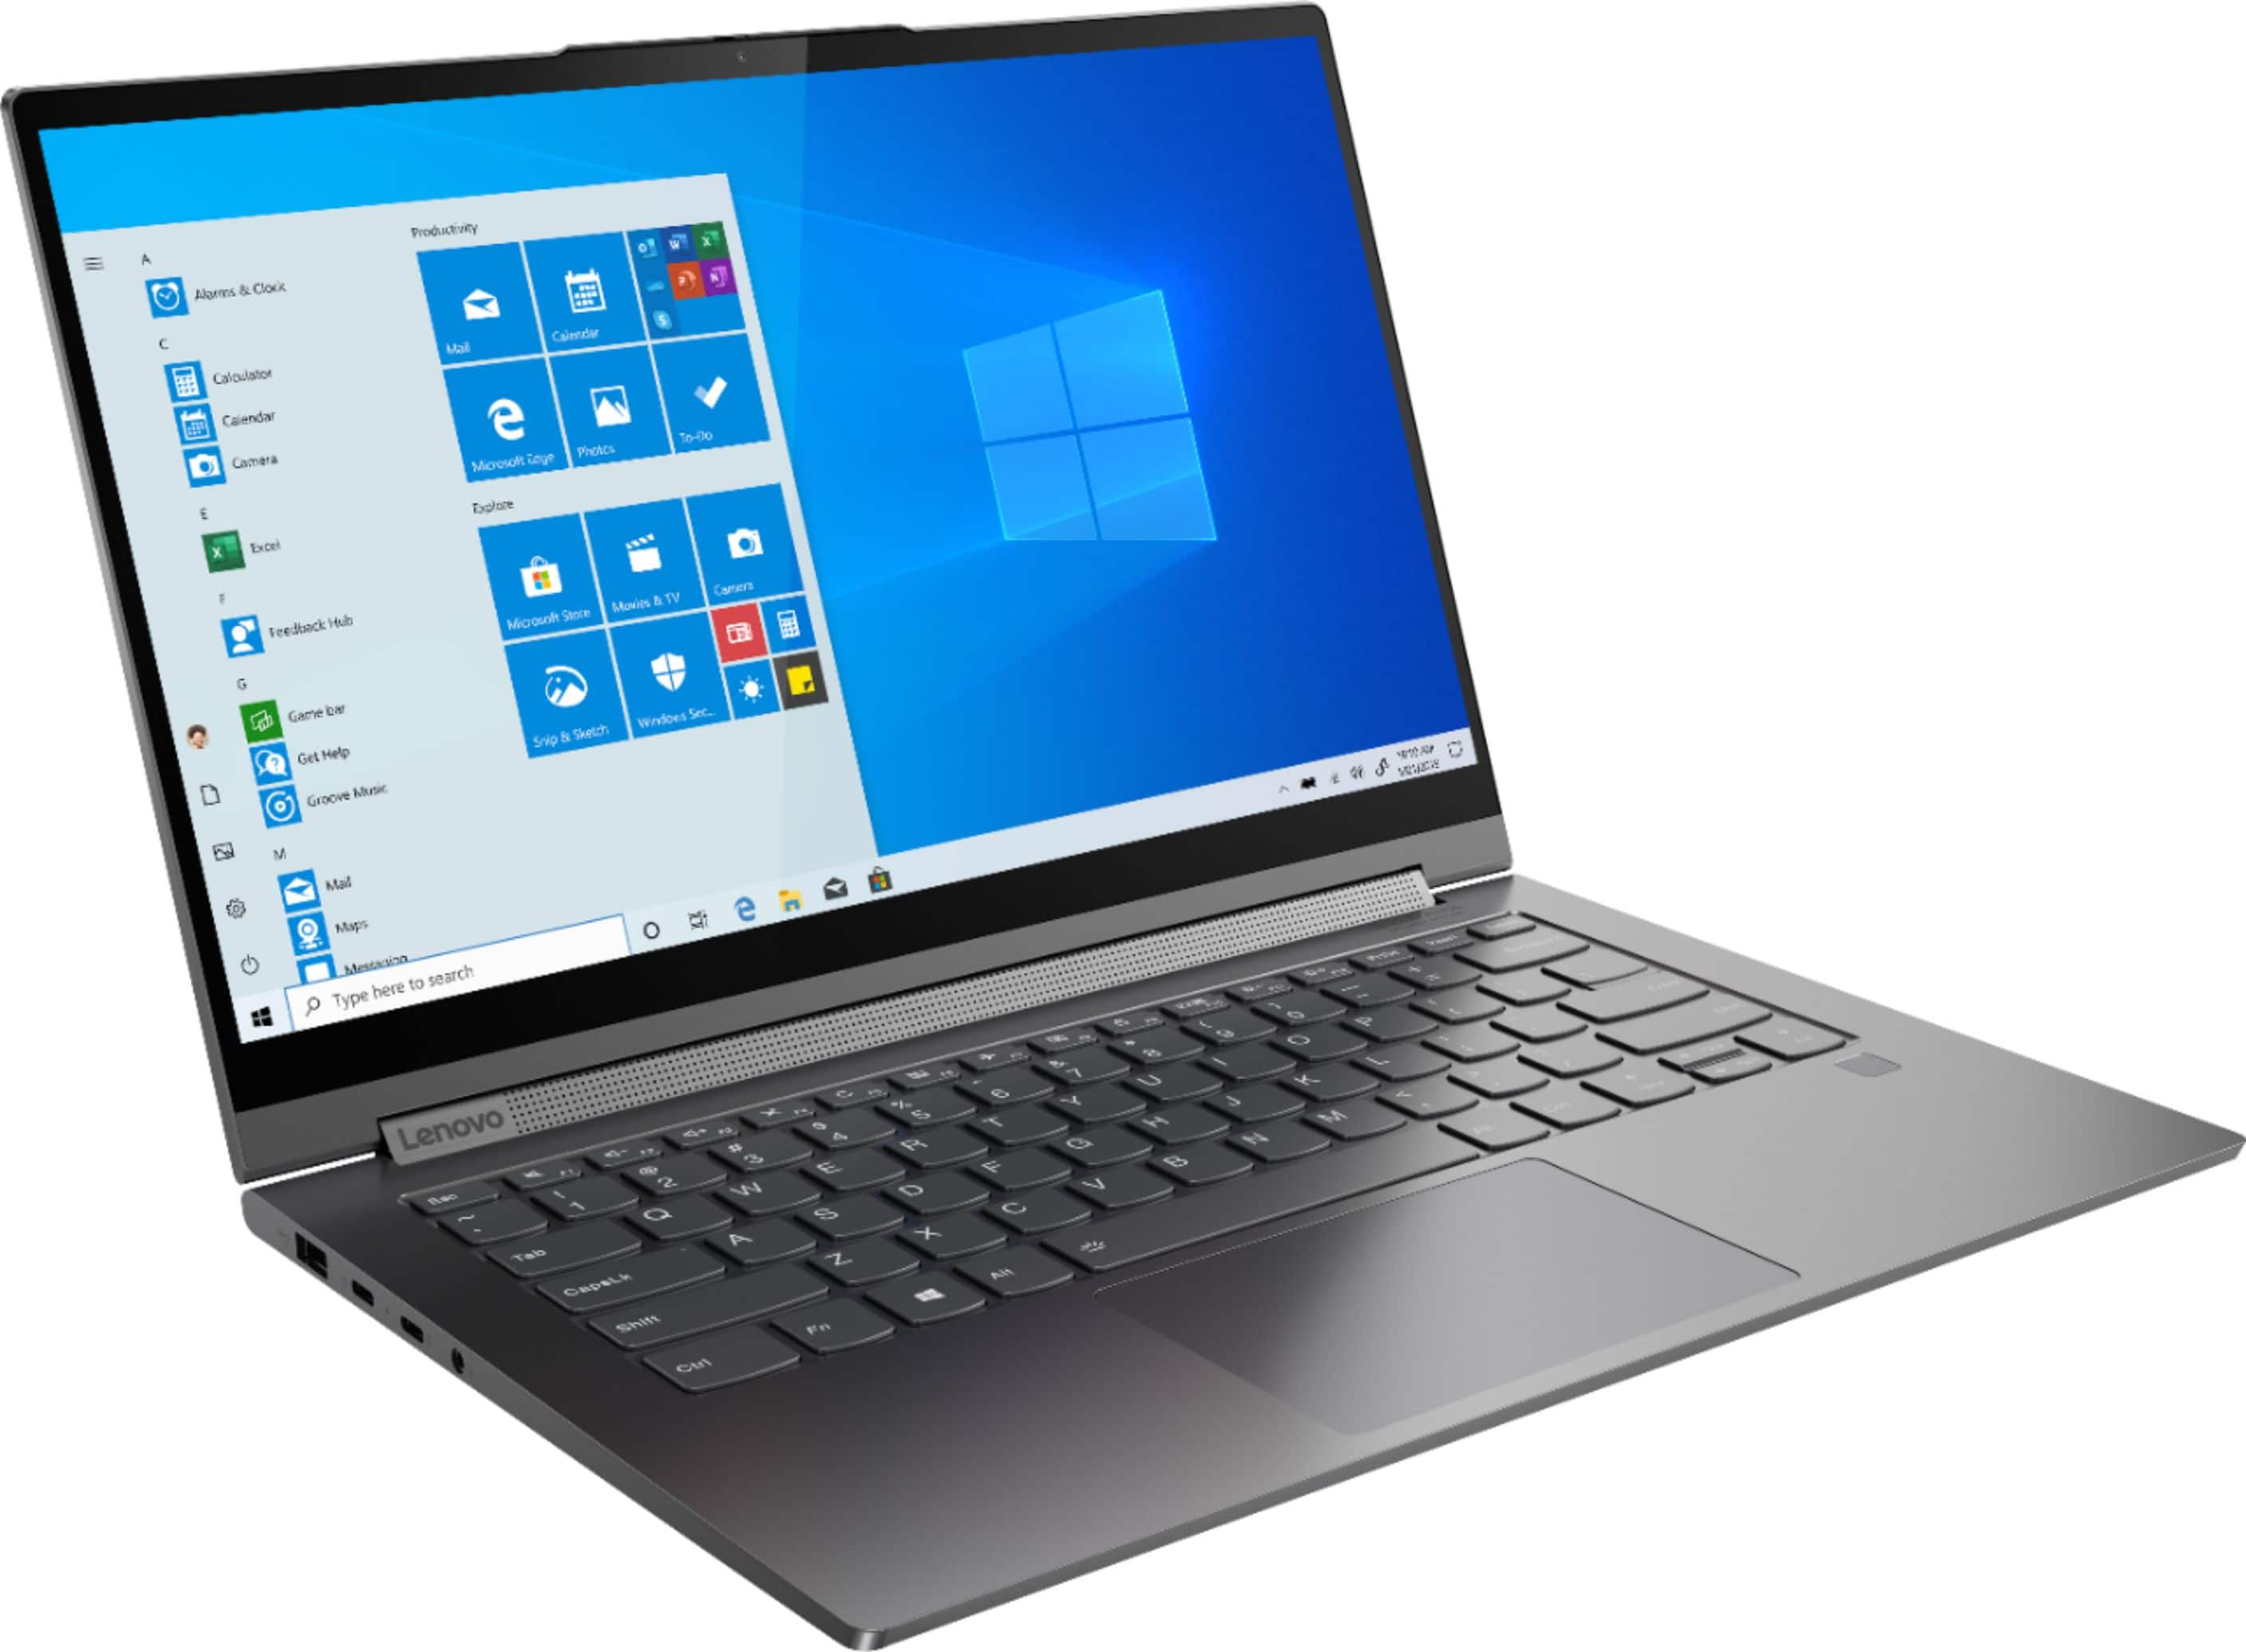 """Lenovo - Yoga C940 2-in-1 14"""" Touch-Screen Laptop - Intel Core i7 - 12GB Memory - 512GB Solid State Drive - Iron Gray $900"""